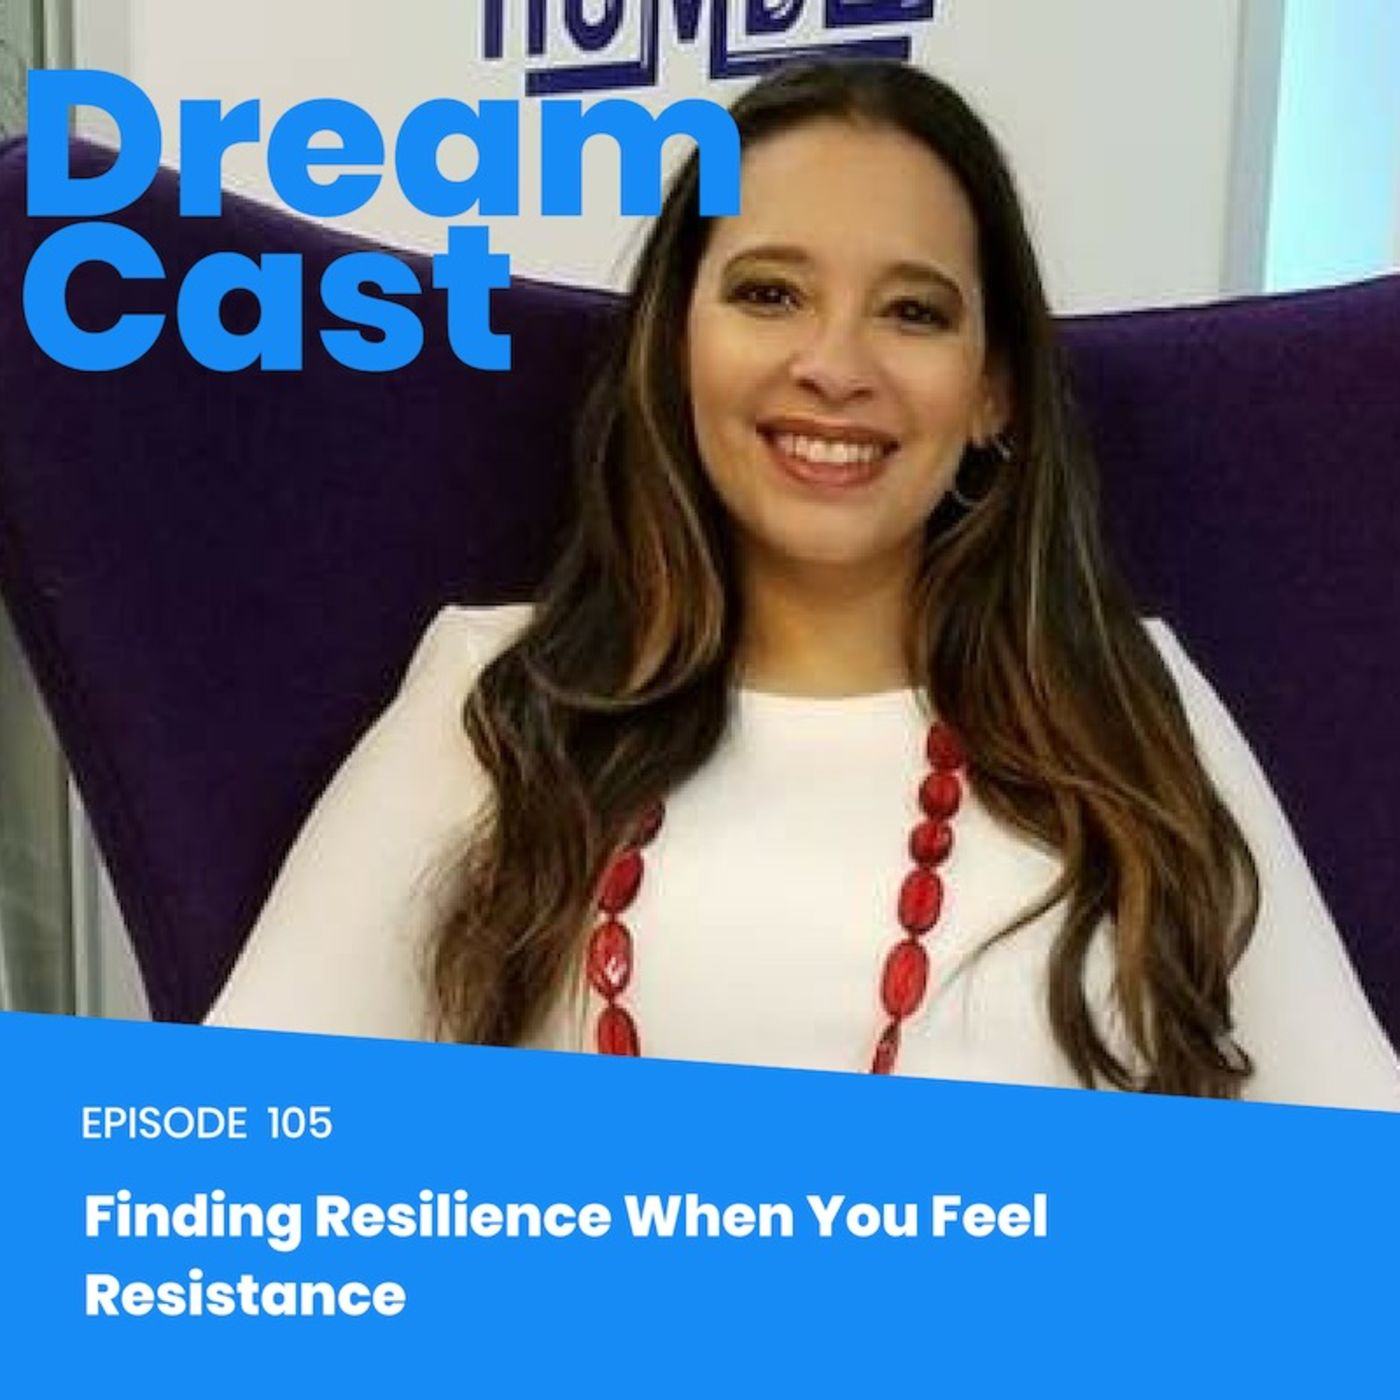 Episode 105 - Finding Resilience When You Feel Resistance